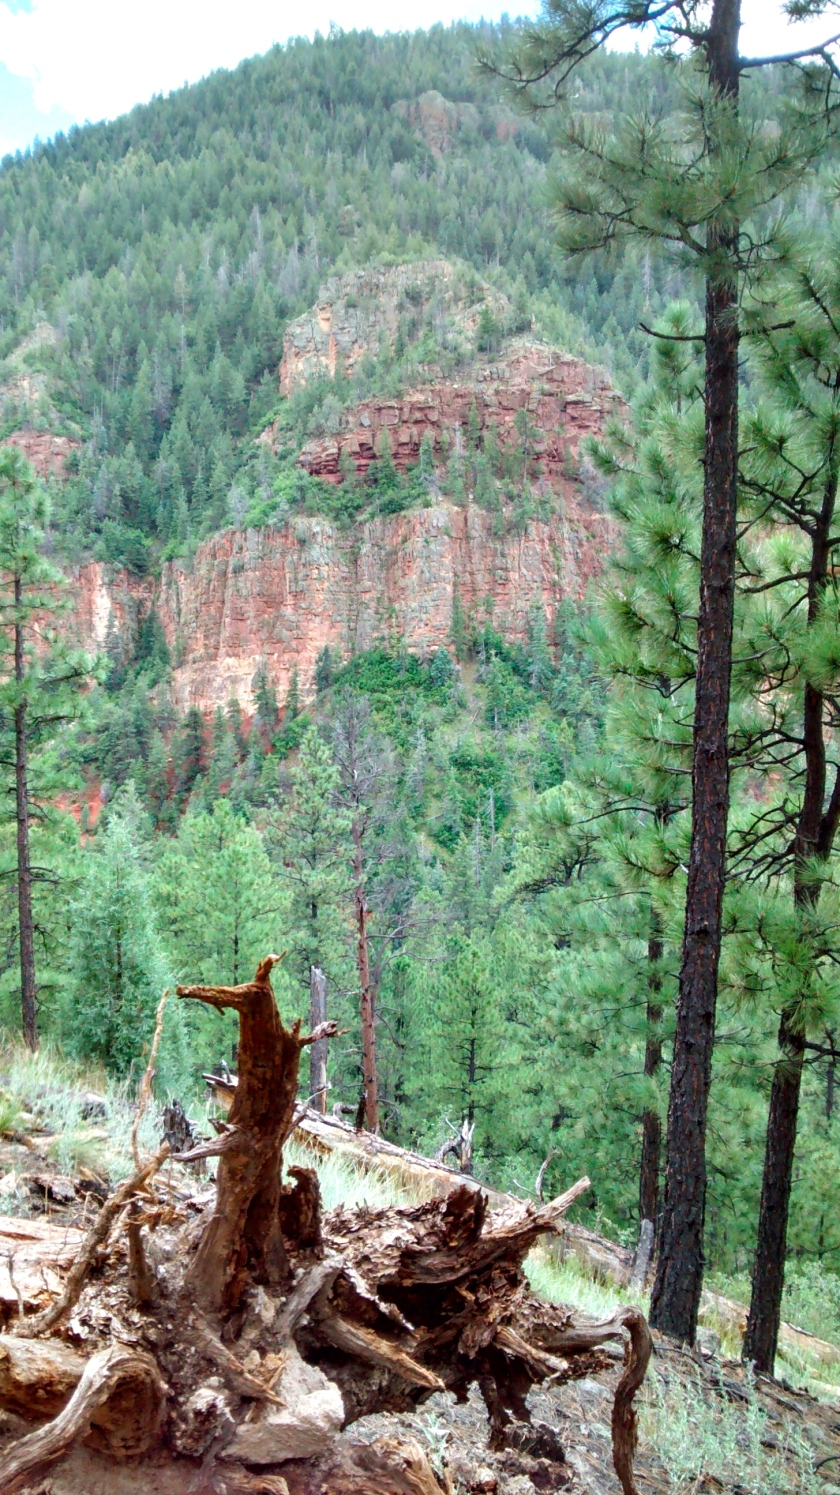 On the trail from Jemez Falls to the springs.